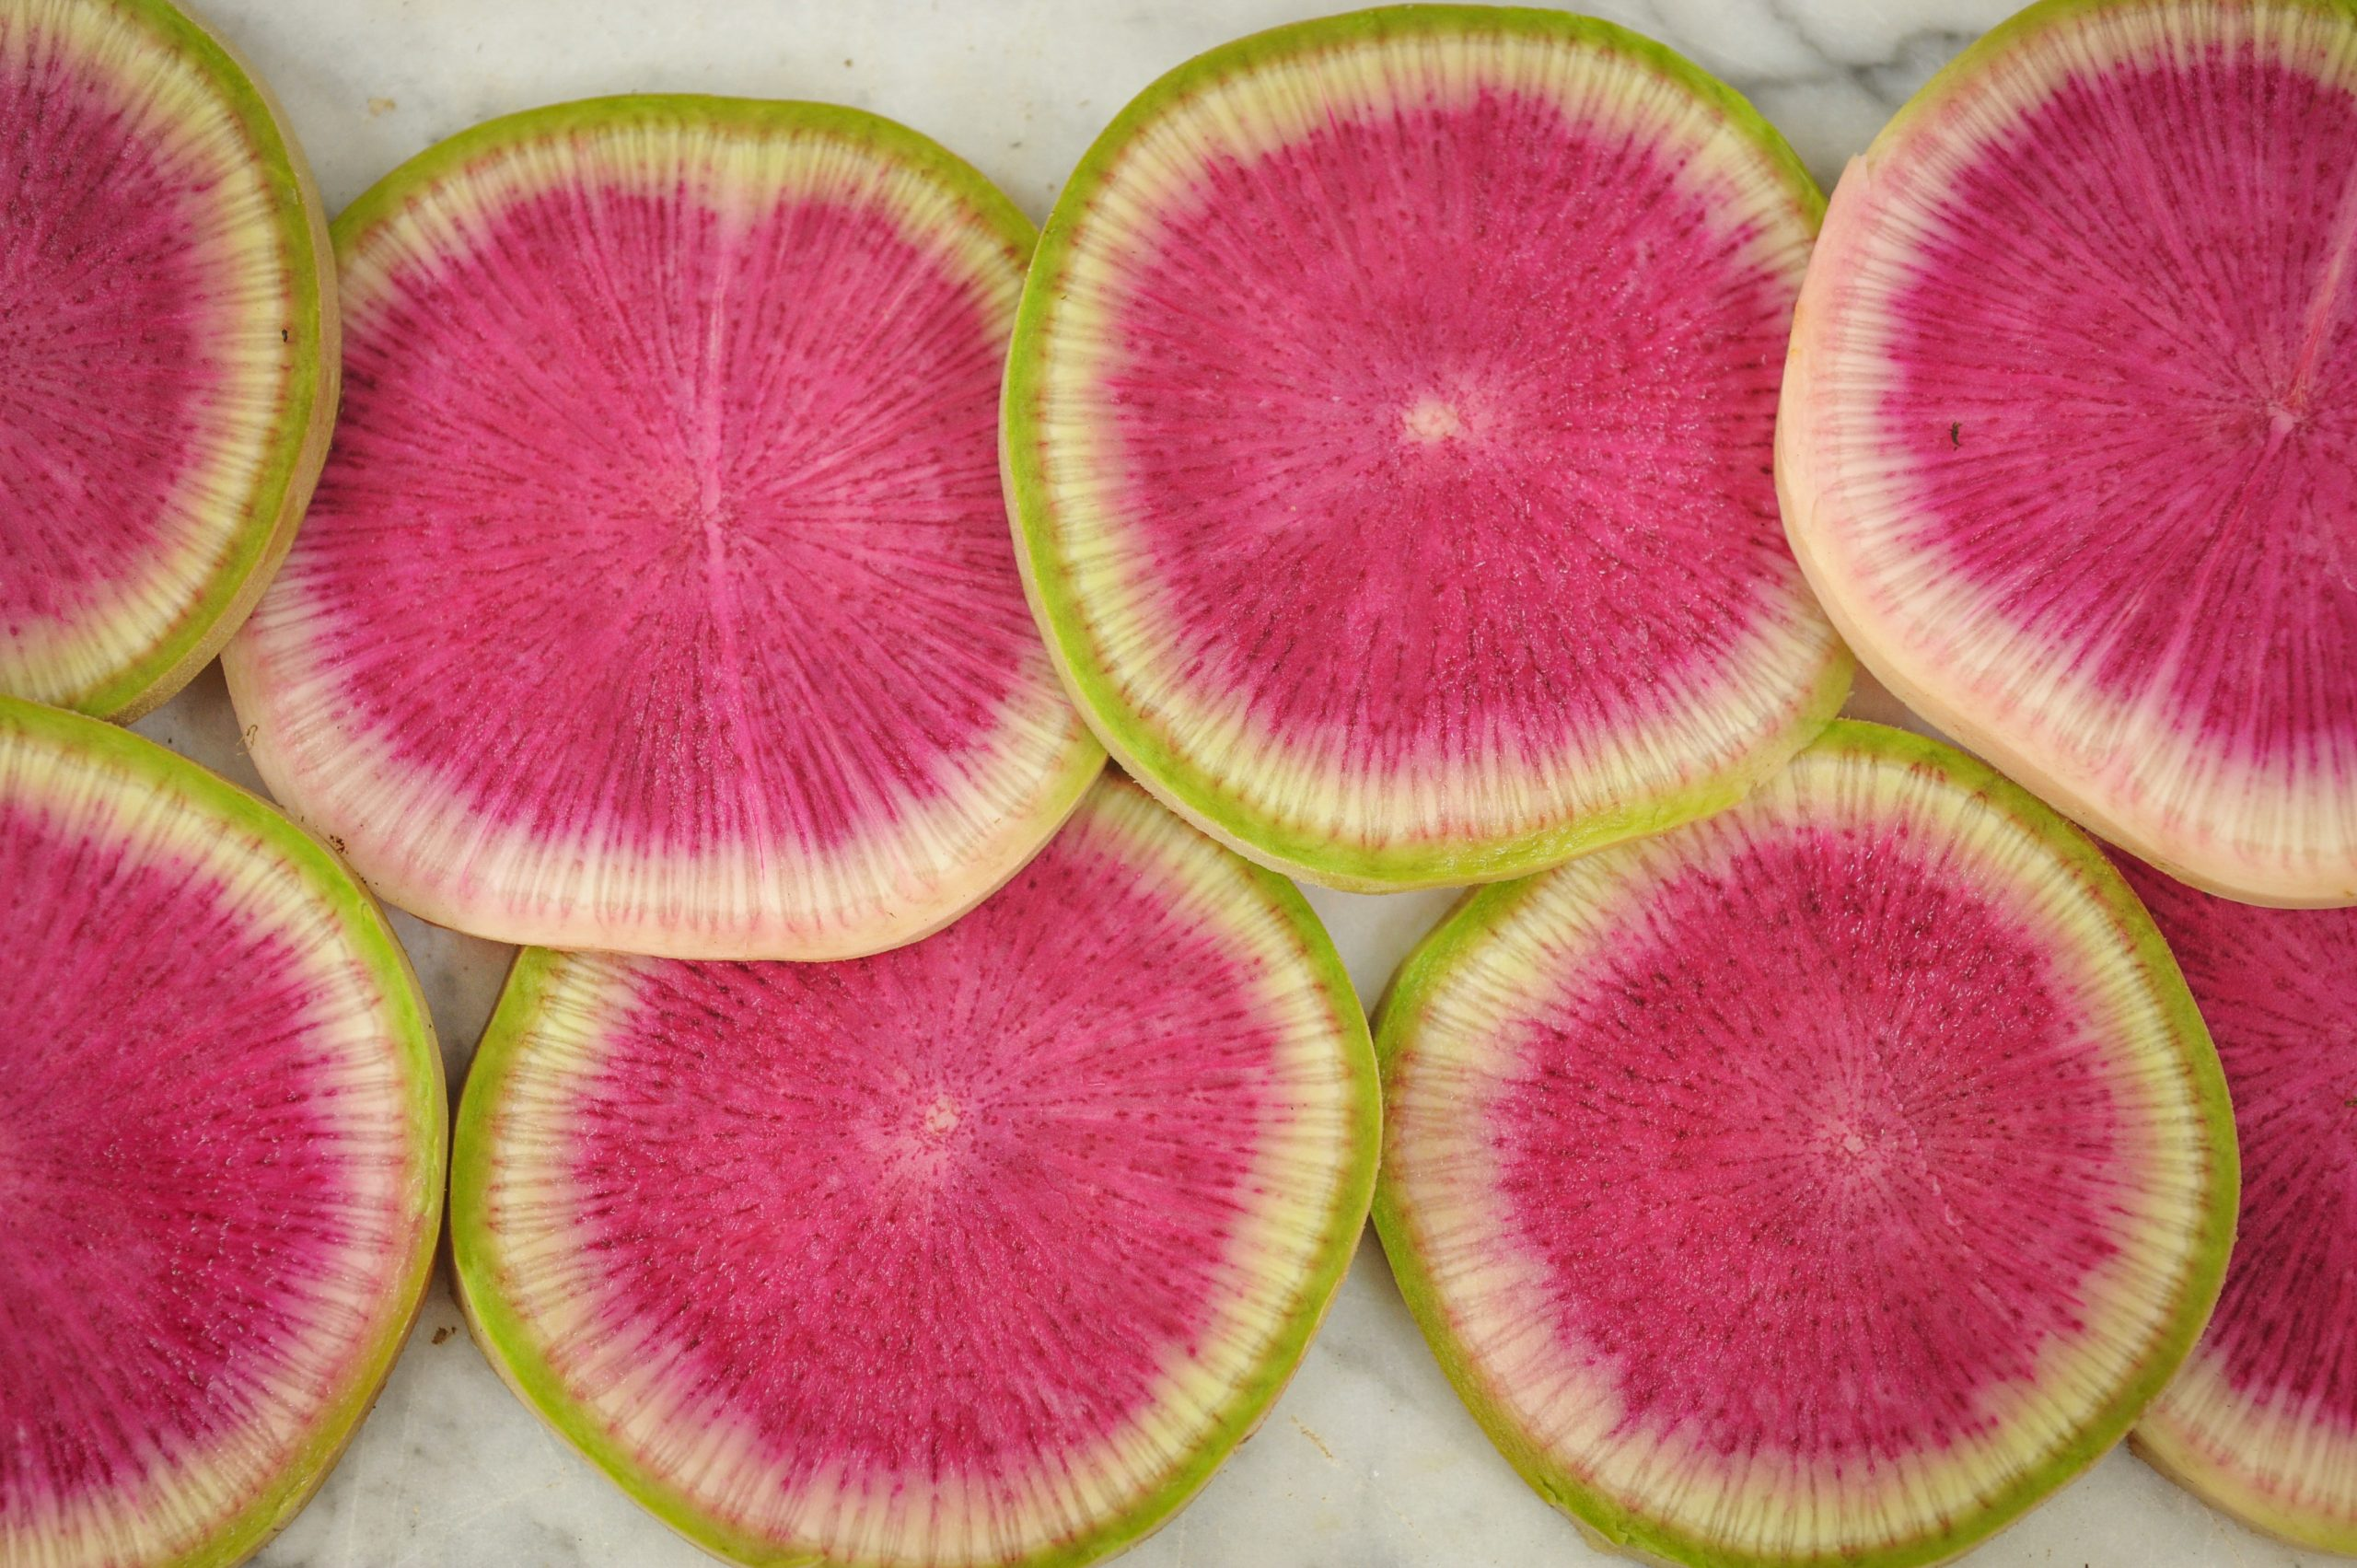 chinese watermelon radish